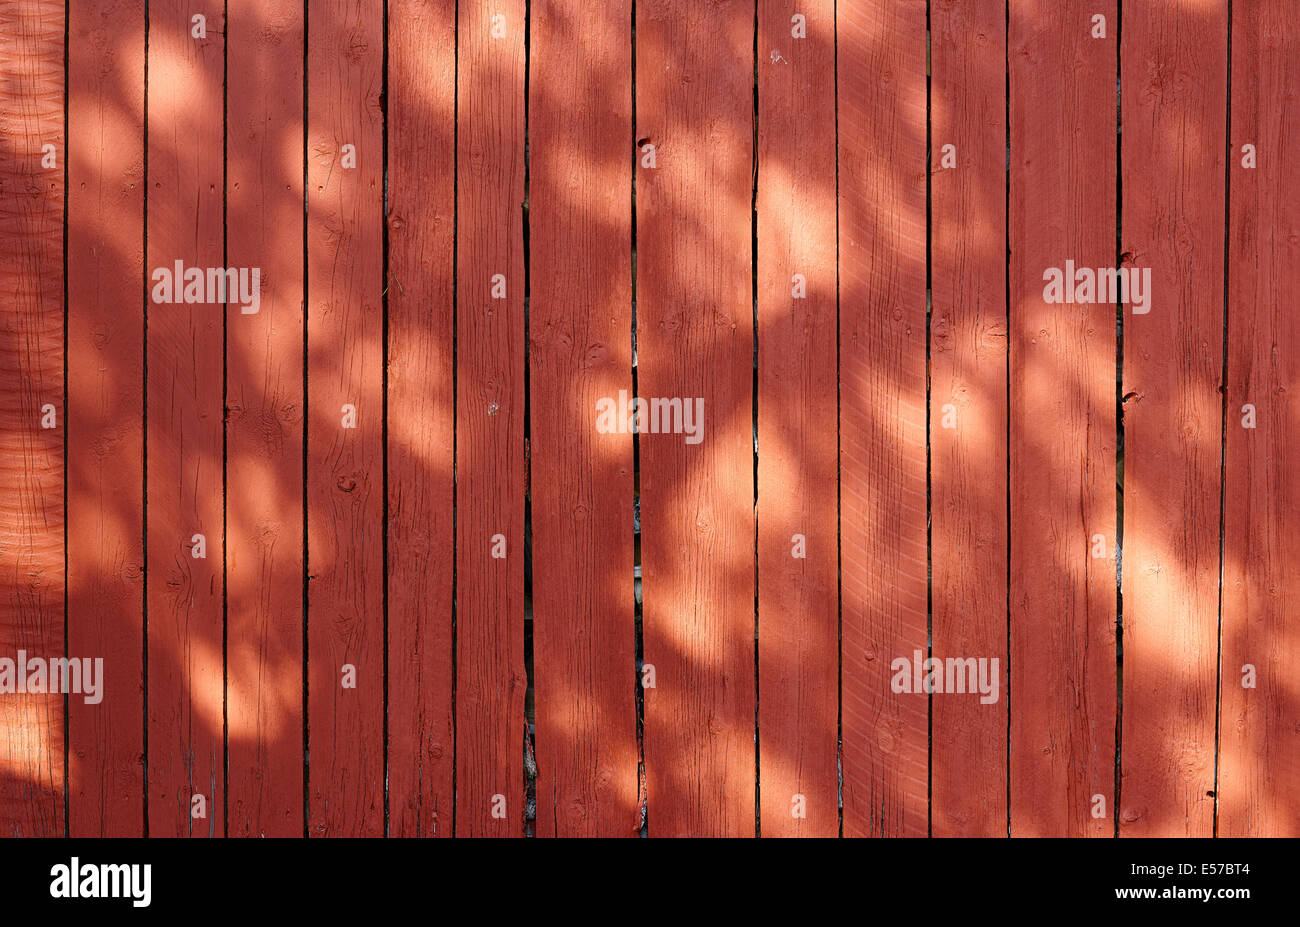 Red wall, unplaned wooden boards, ventilation gaps - Stock Image